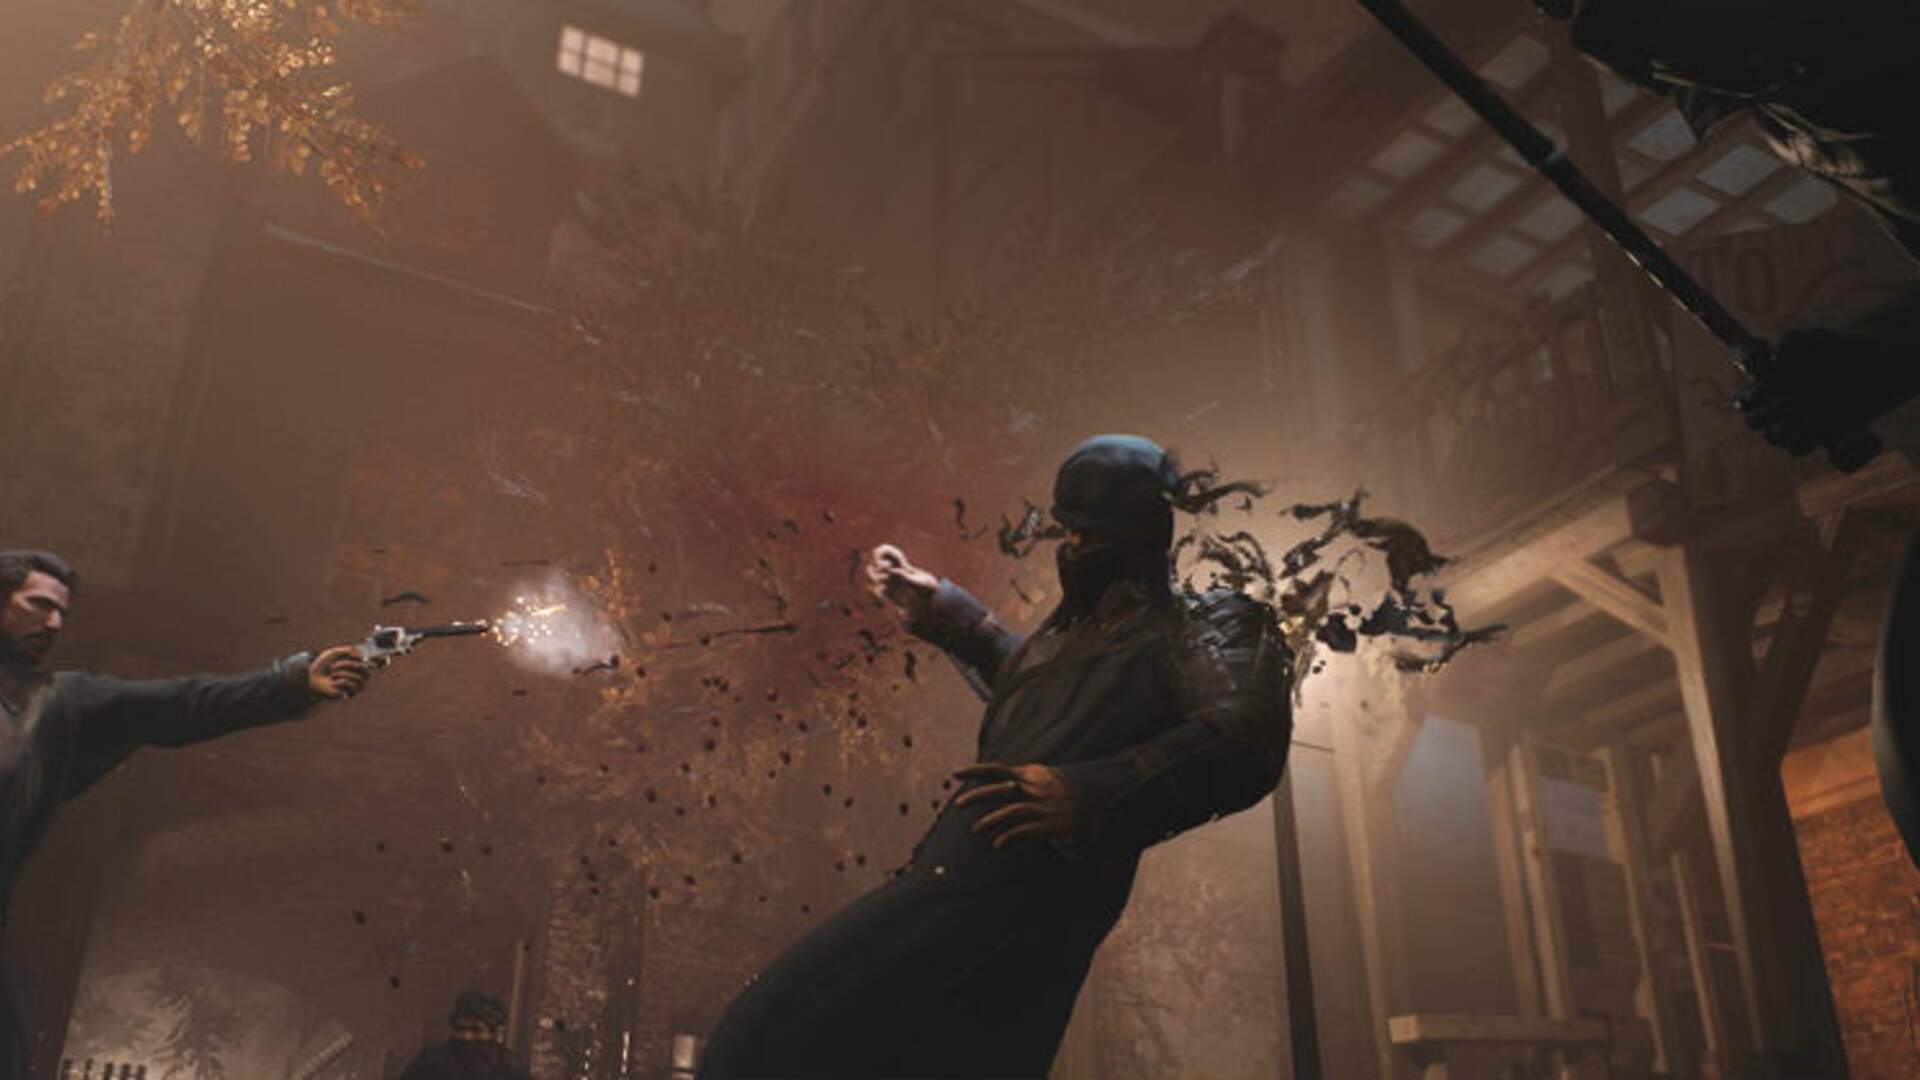 Terminator Salvation Director is Bringing Dontnod's Vampyr to TV